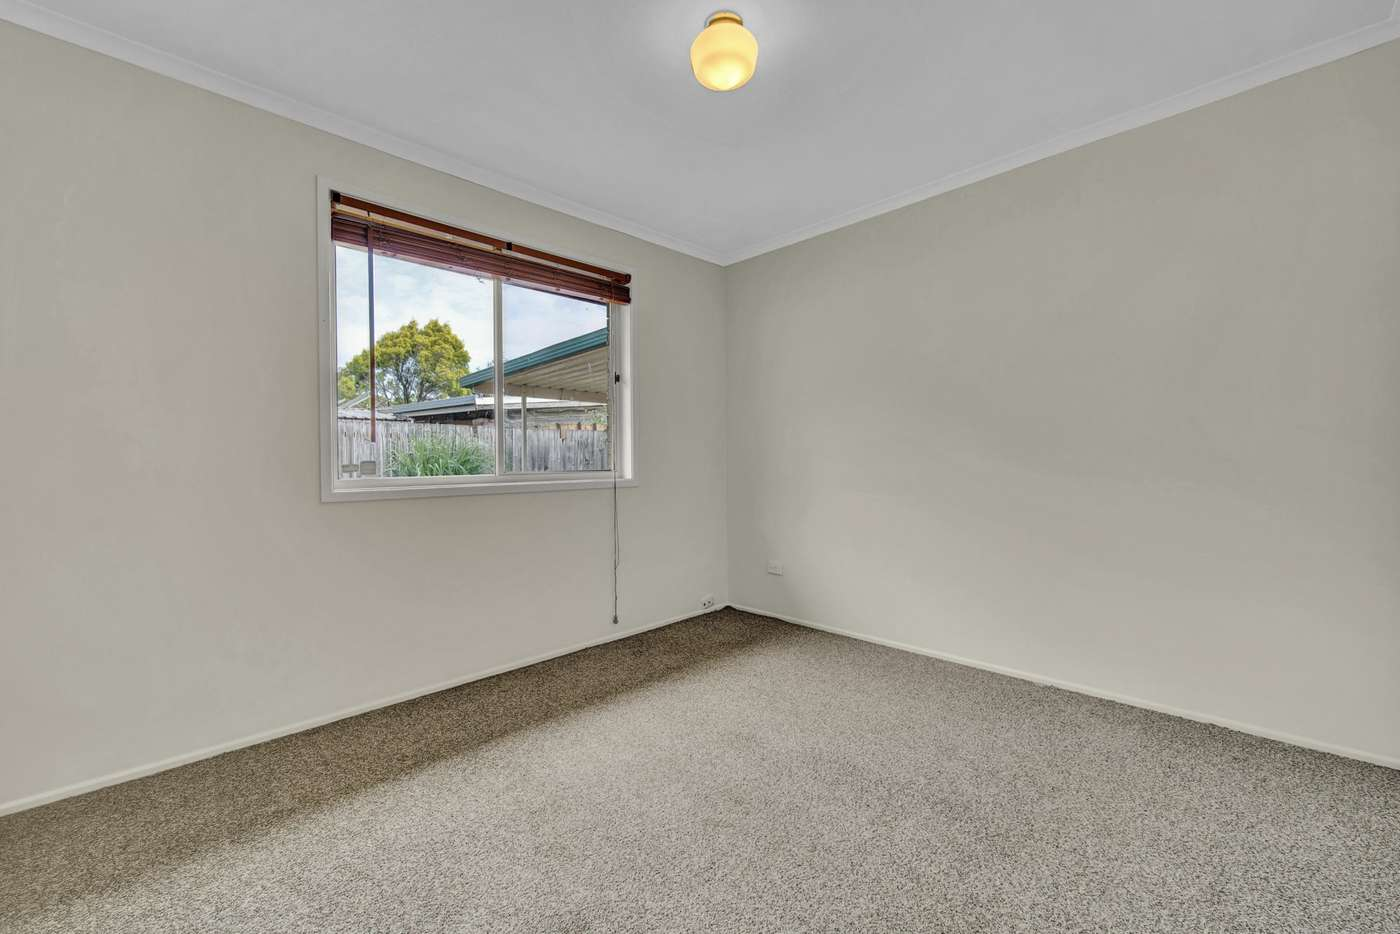 Seventh view of Homely house listing, 3 Carlton Close, Bethania QLD 4205